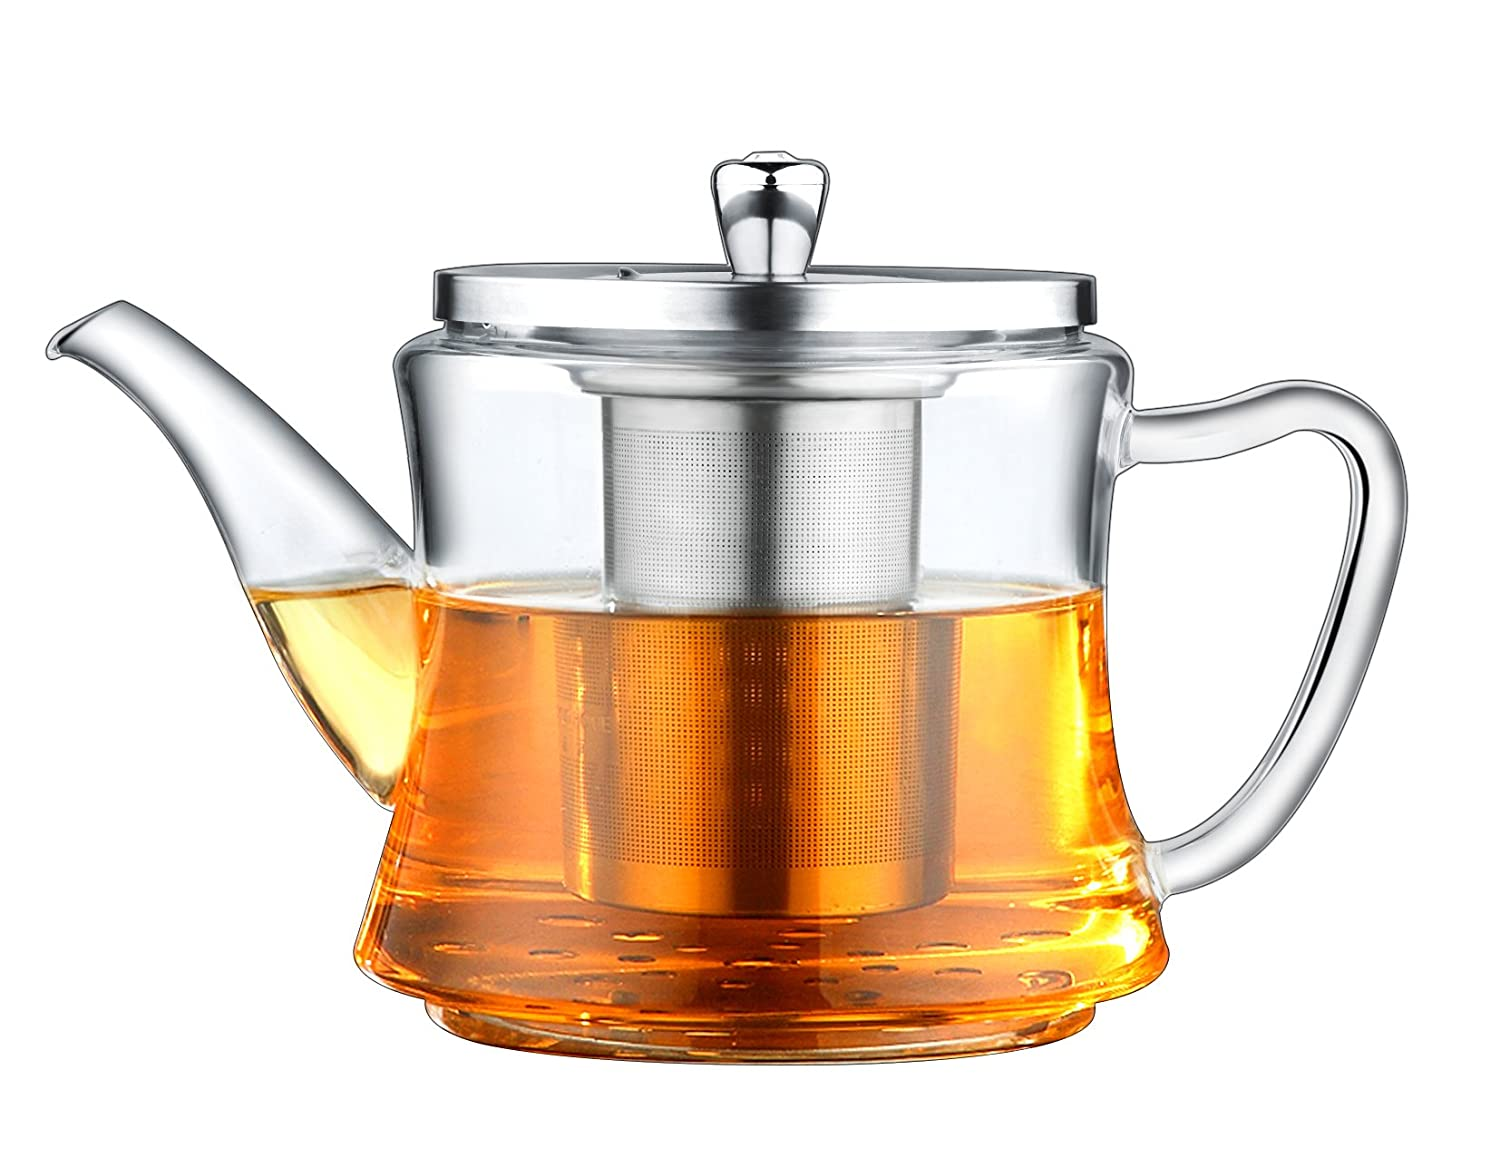 Multifunctional Glass Teapot: For Making Tea and Boiling Tea, Applicable for Electromagnetic Oven, Gas Stove, Electric Ceramic Cooker and Lightwave Oven IAN Co.Ltd. COMINHKPR95171